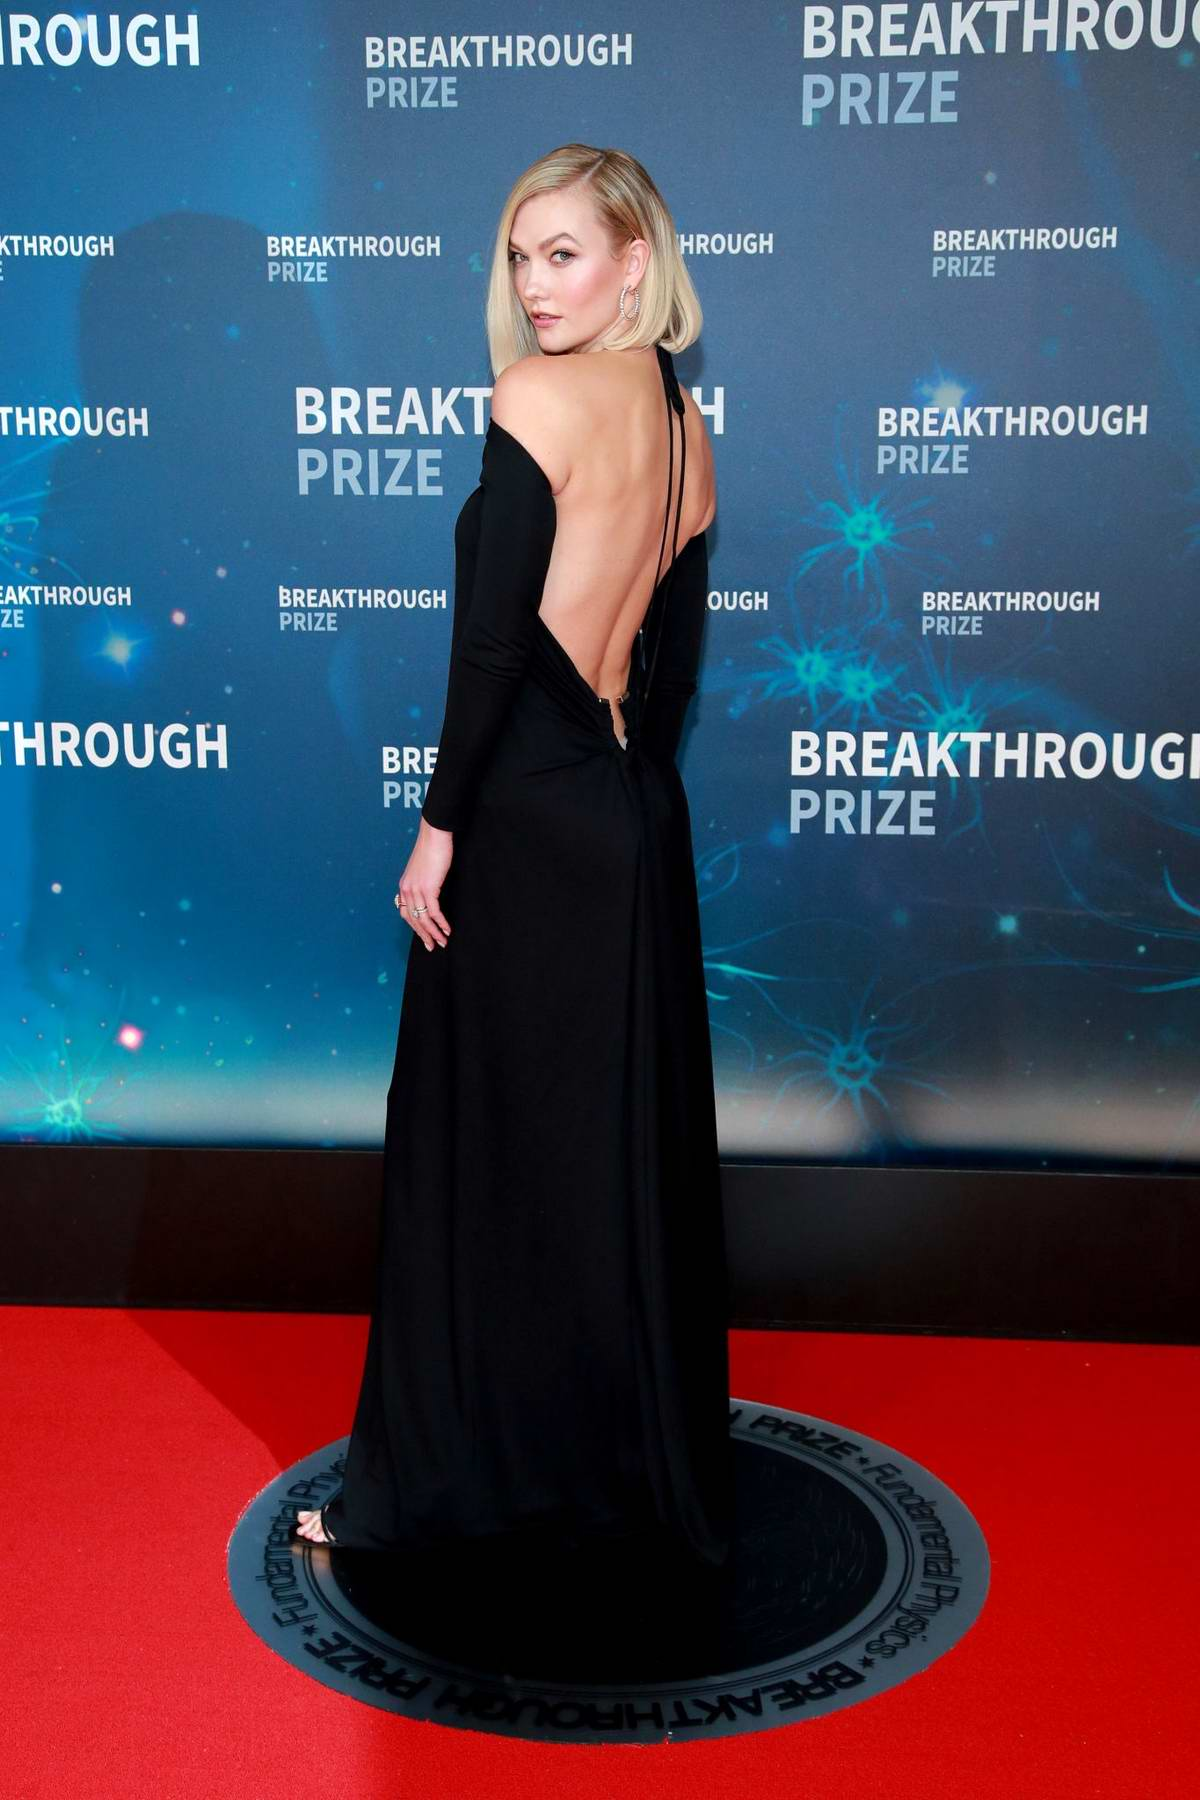 Karlie Kloss attends the 8th Annual Breakthrough Prize Ceremony in Mountain View, California